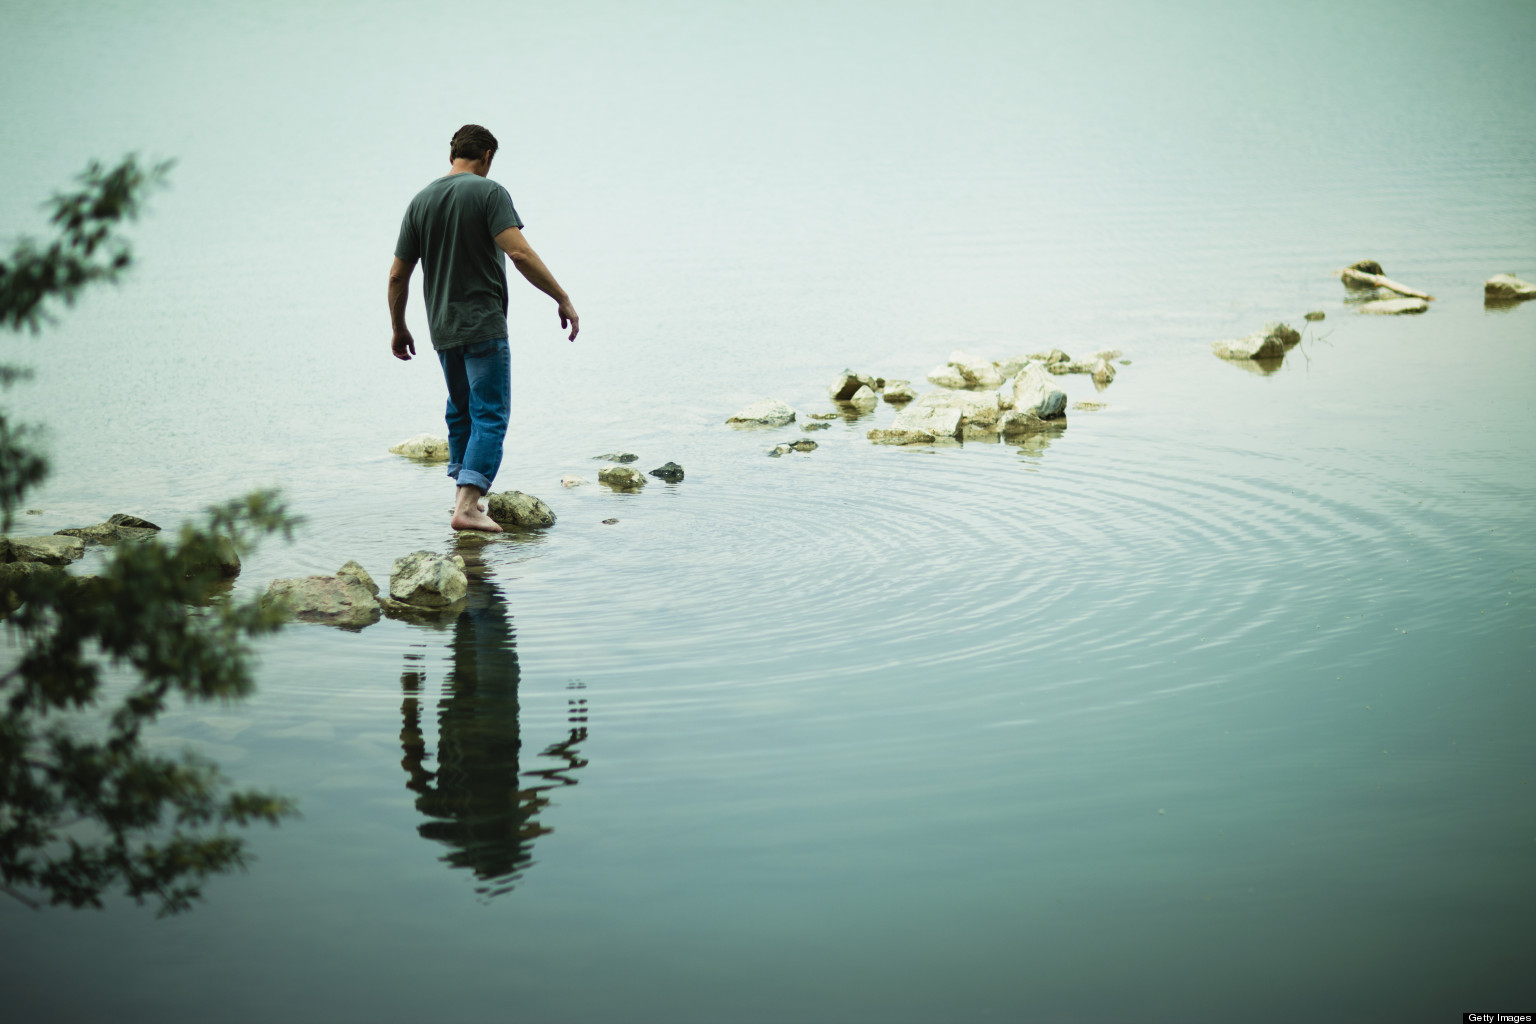 A man walking barefoot across stepping stones away from the shore of a lake.